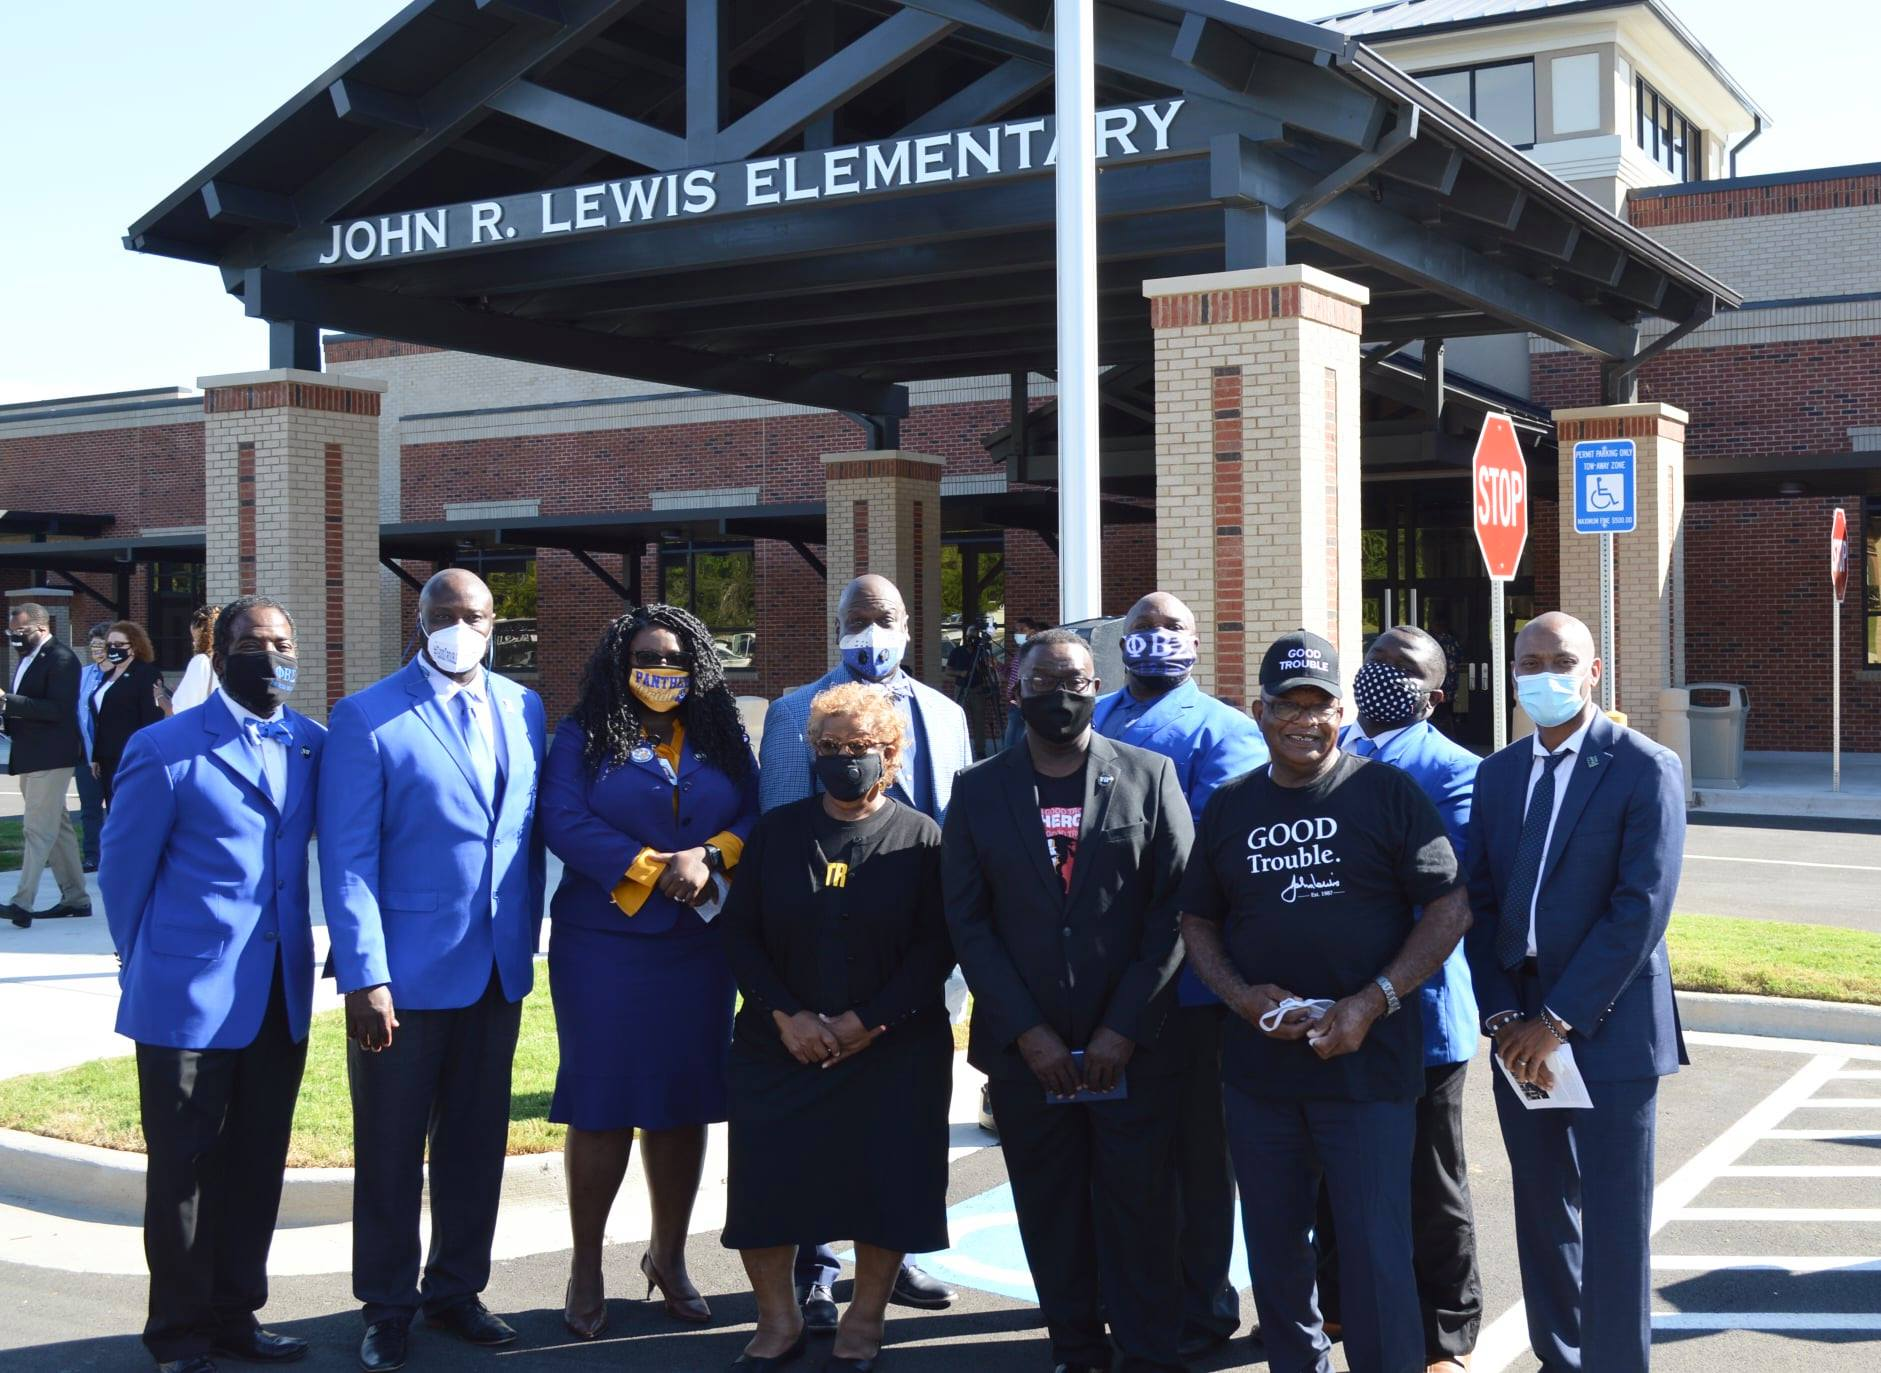 john-lewis-elementary-school-renaming-ceremony_3